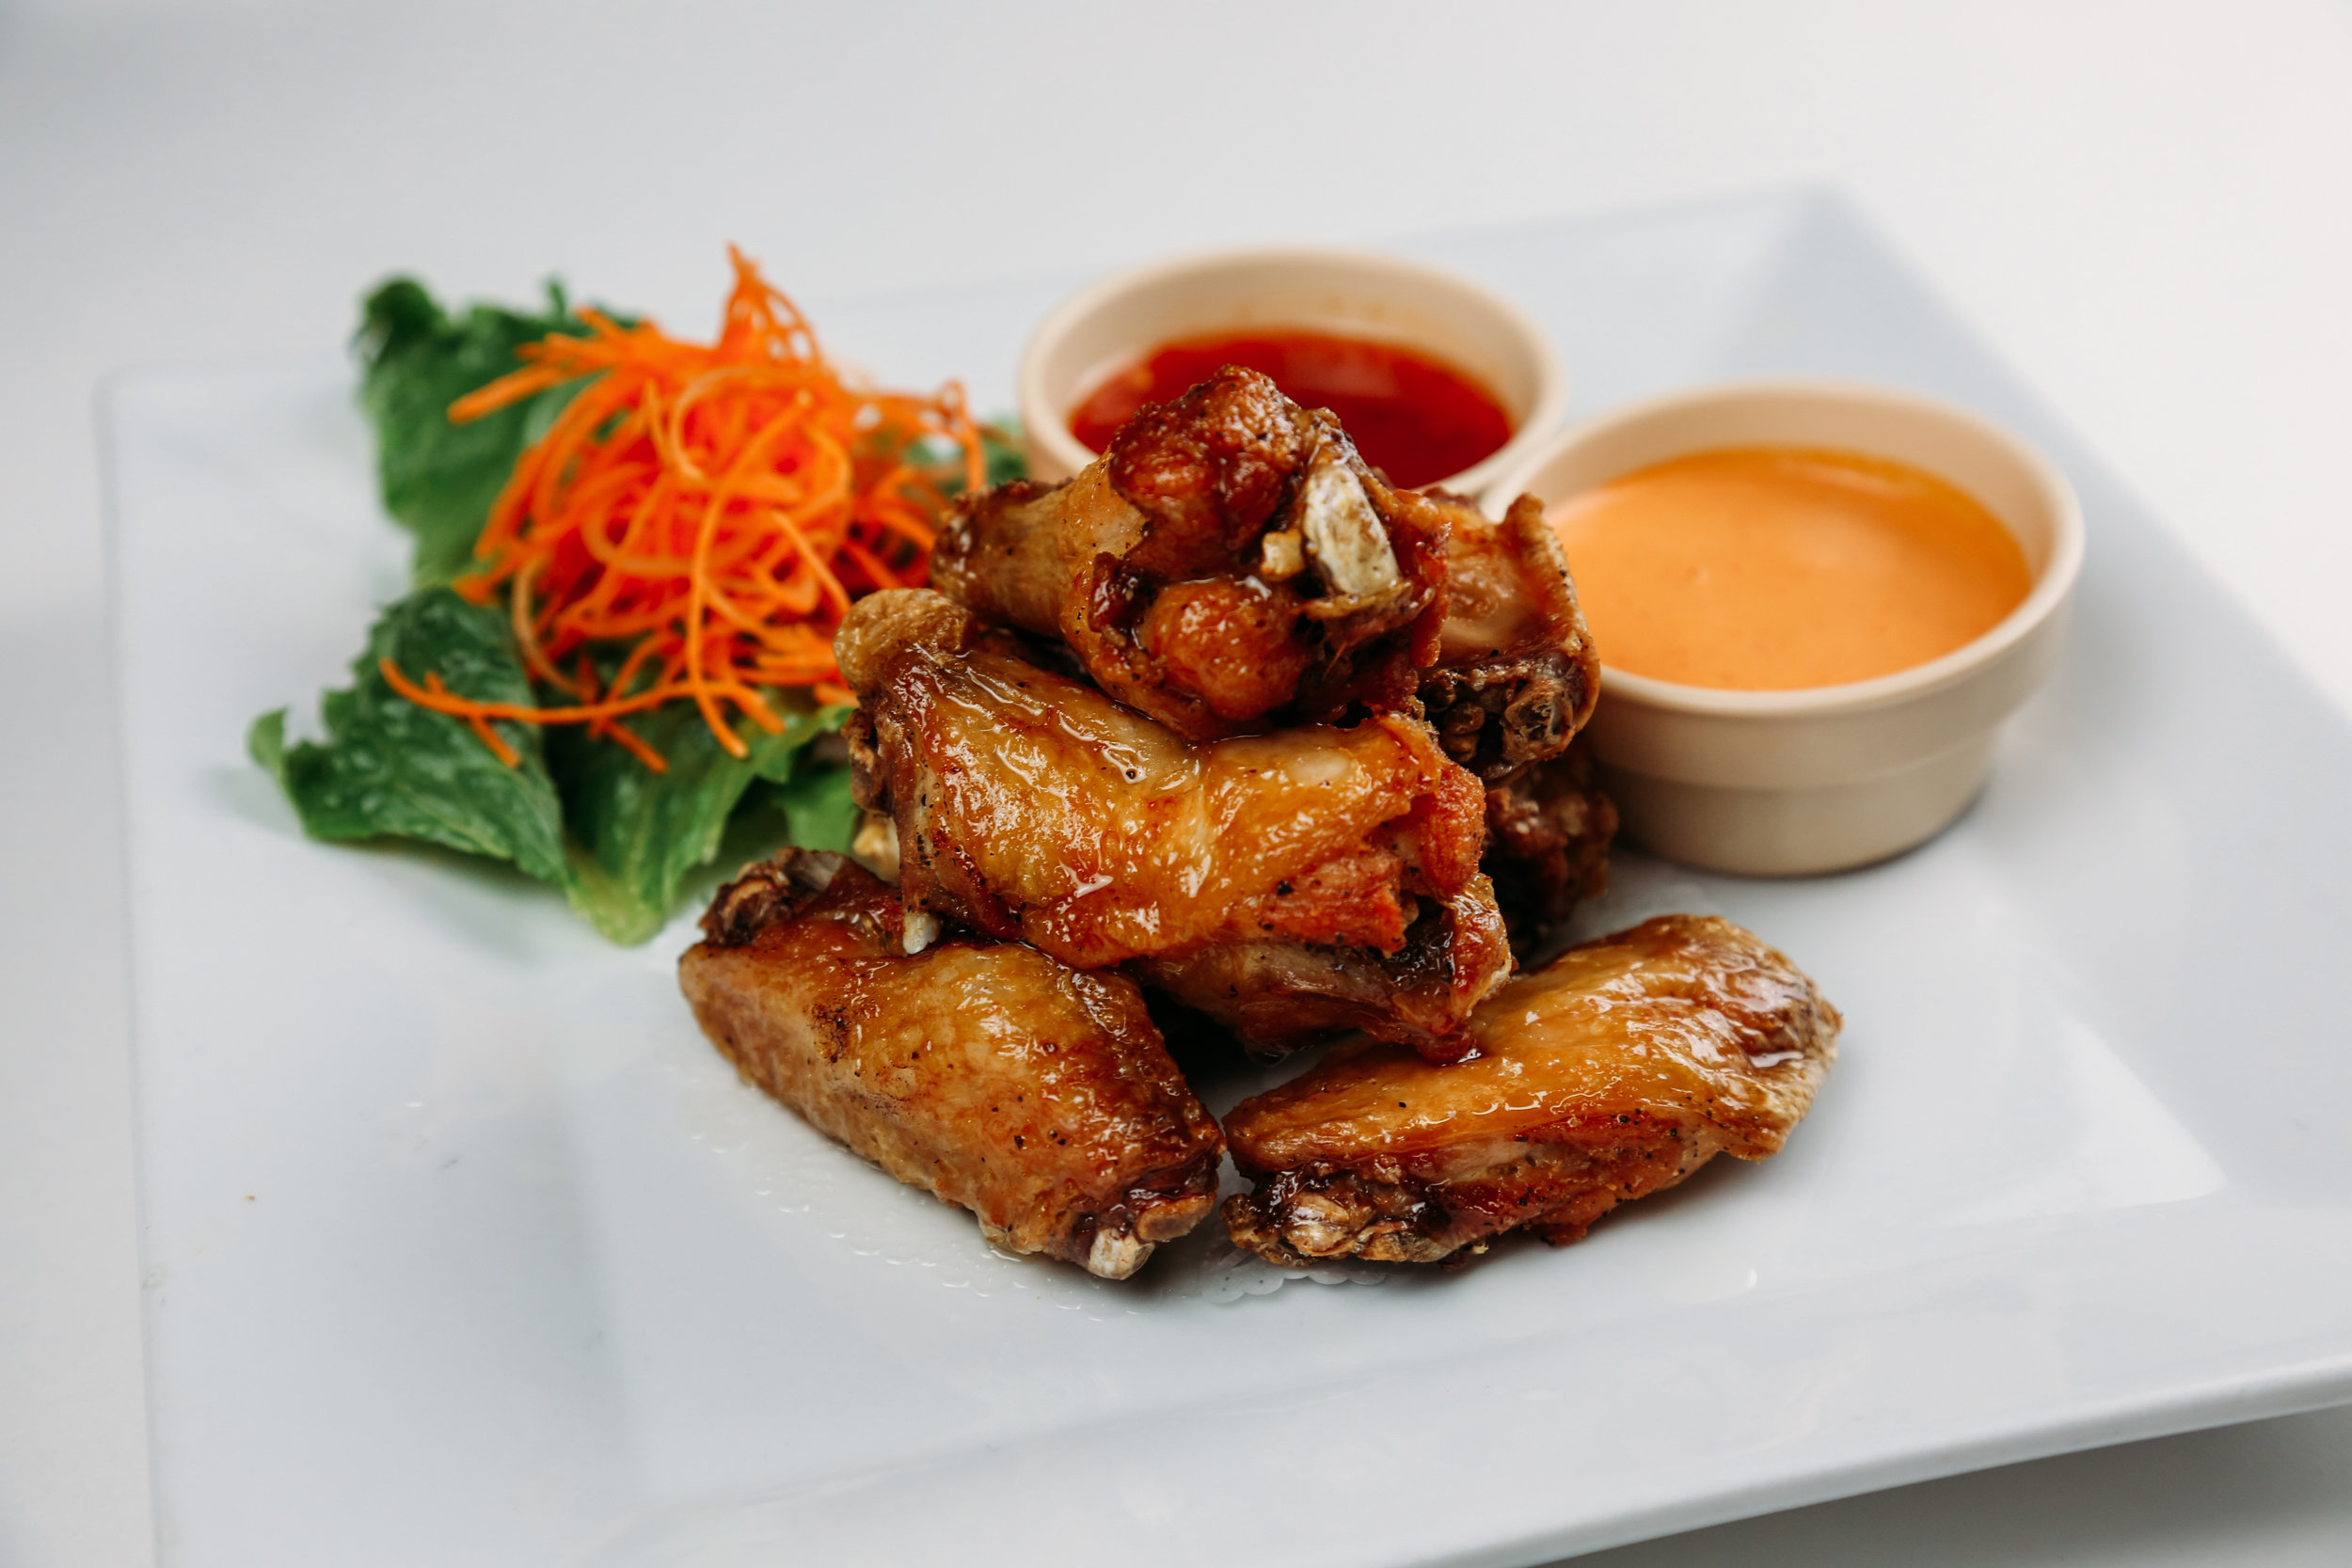 Thai chicken wings - Crisp chicken wings tossed in the wok with sweet chili sauce.